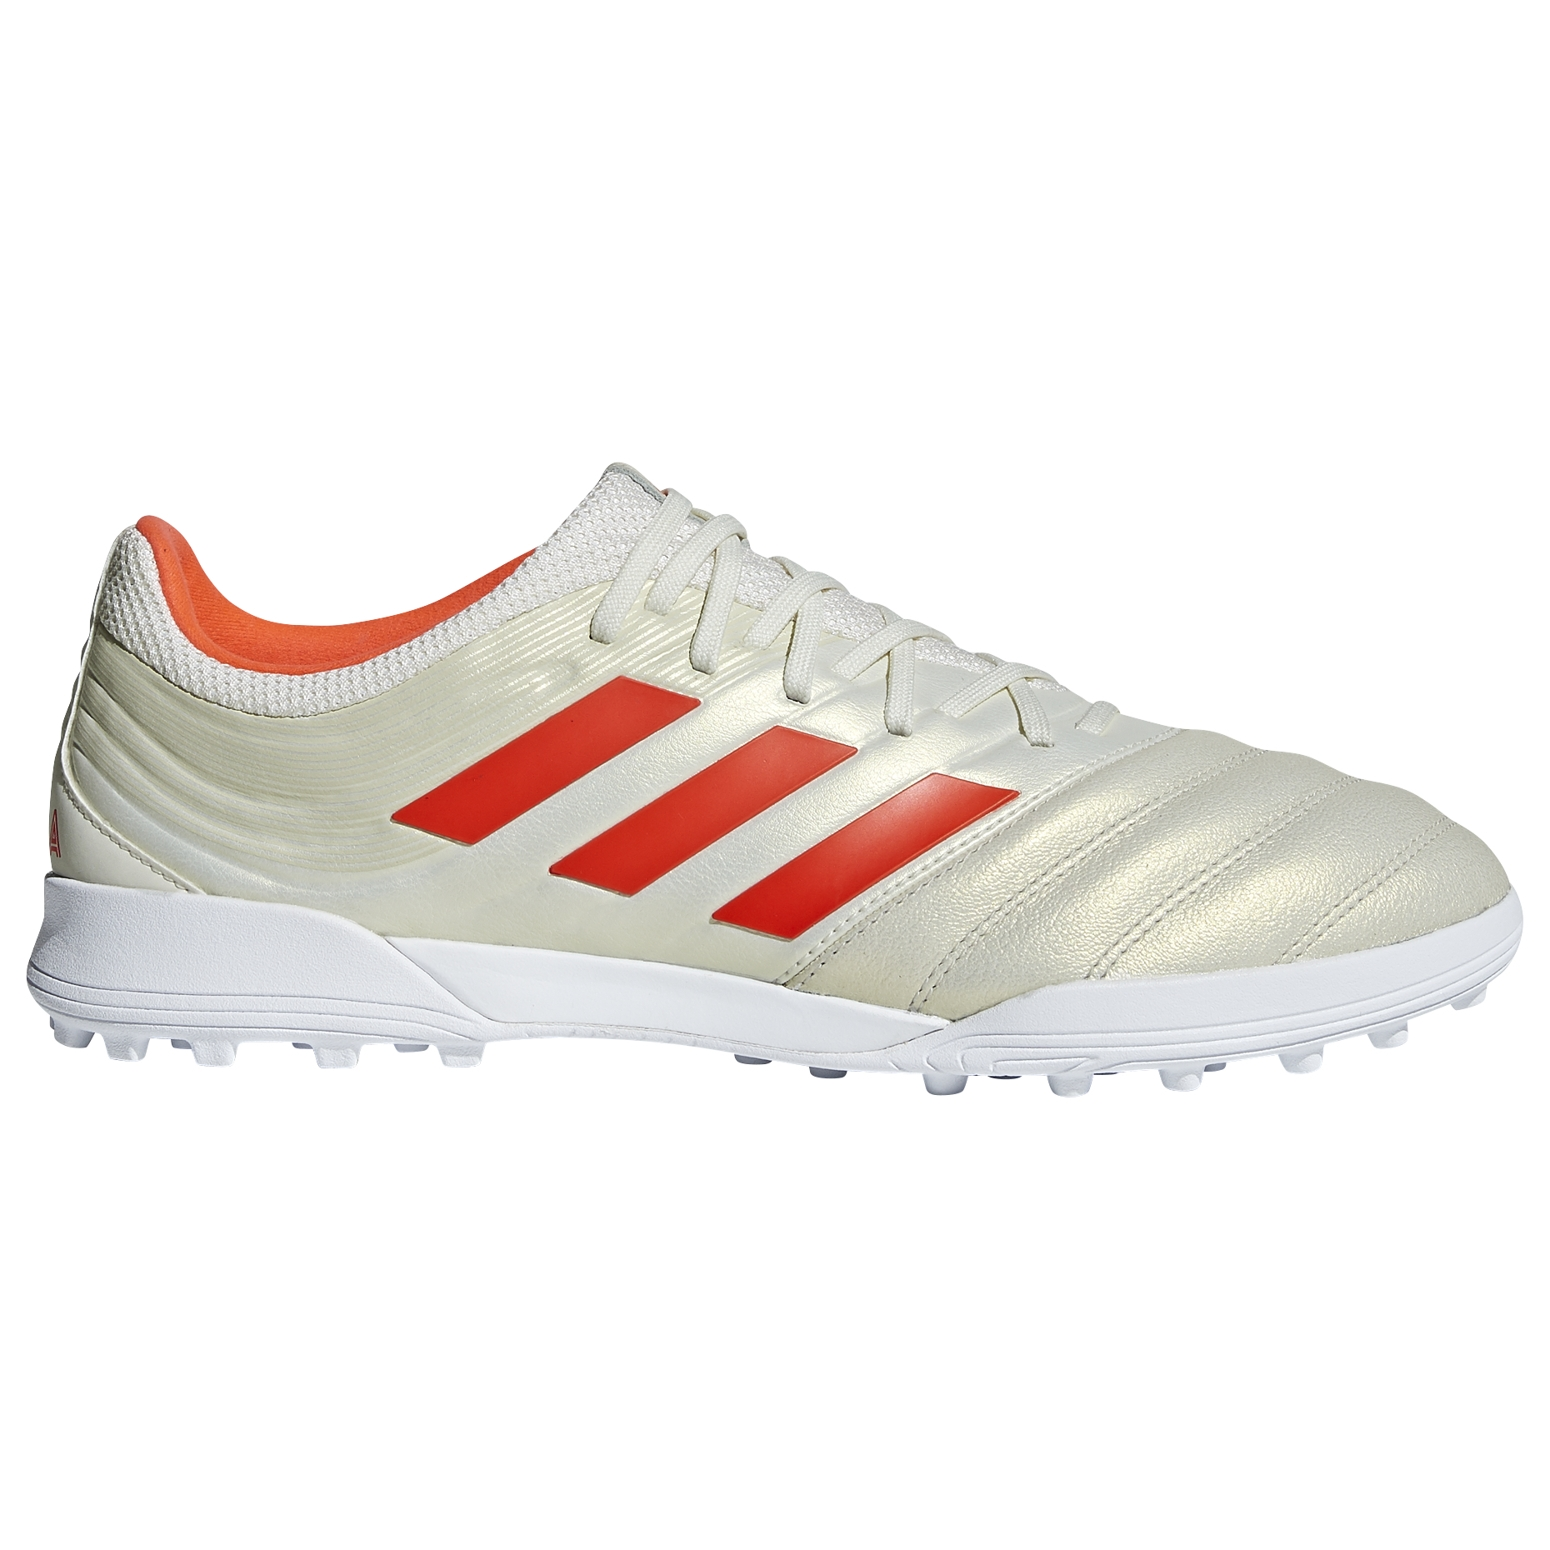 new style 7bbbd 1e762 ADIDAS COPA 19.3 TF - gallery 0